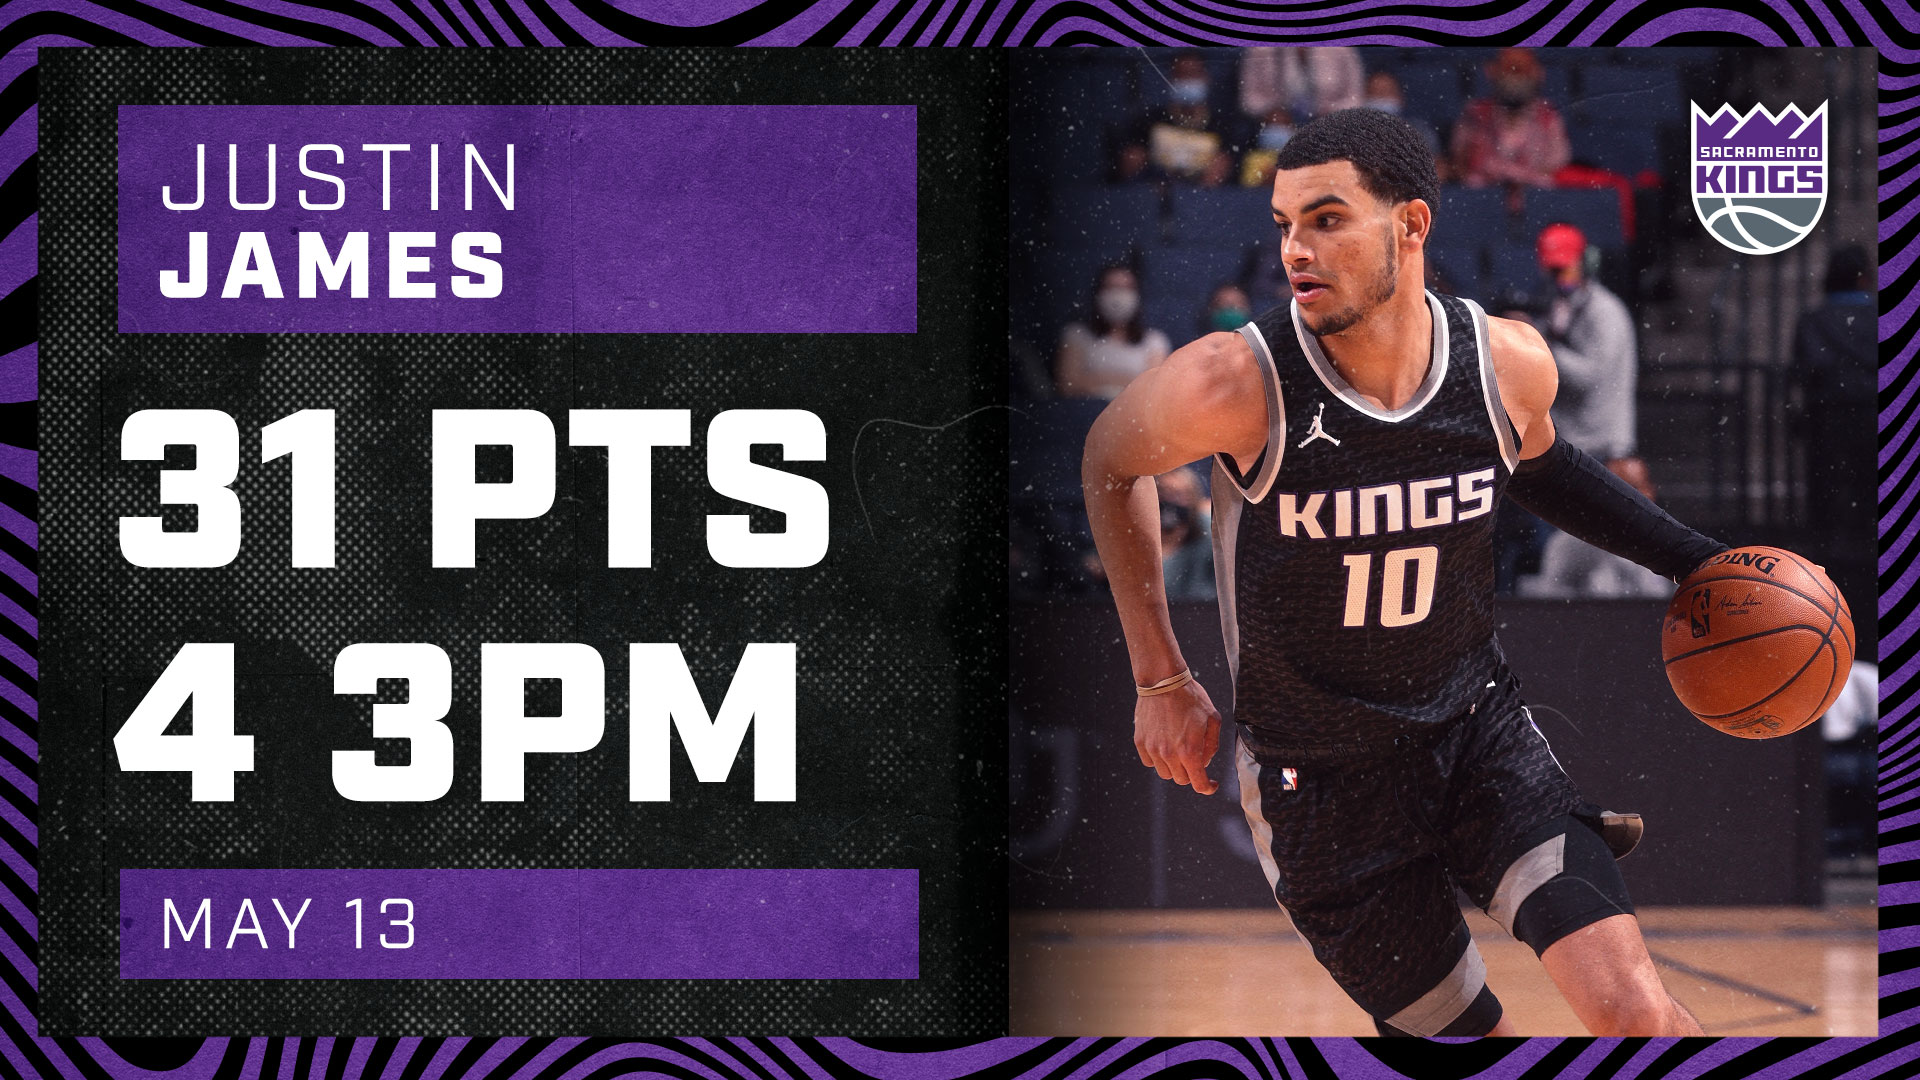 Justin James Drops Career-High 31 PTS! | Kings vs Grizzlies 5.13.21